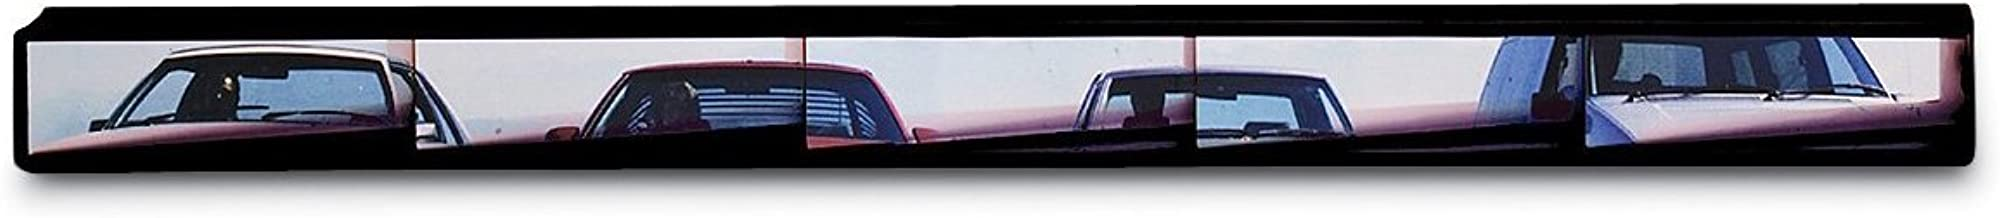 Best honda civic rear view mirror installation Reviews